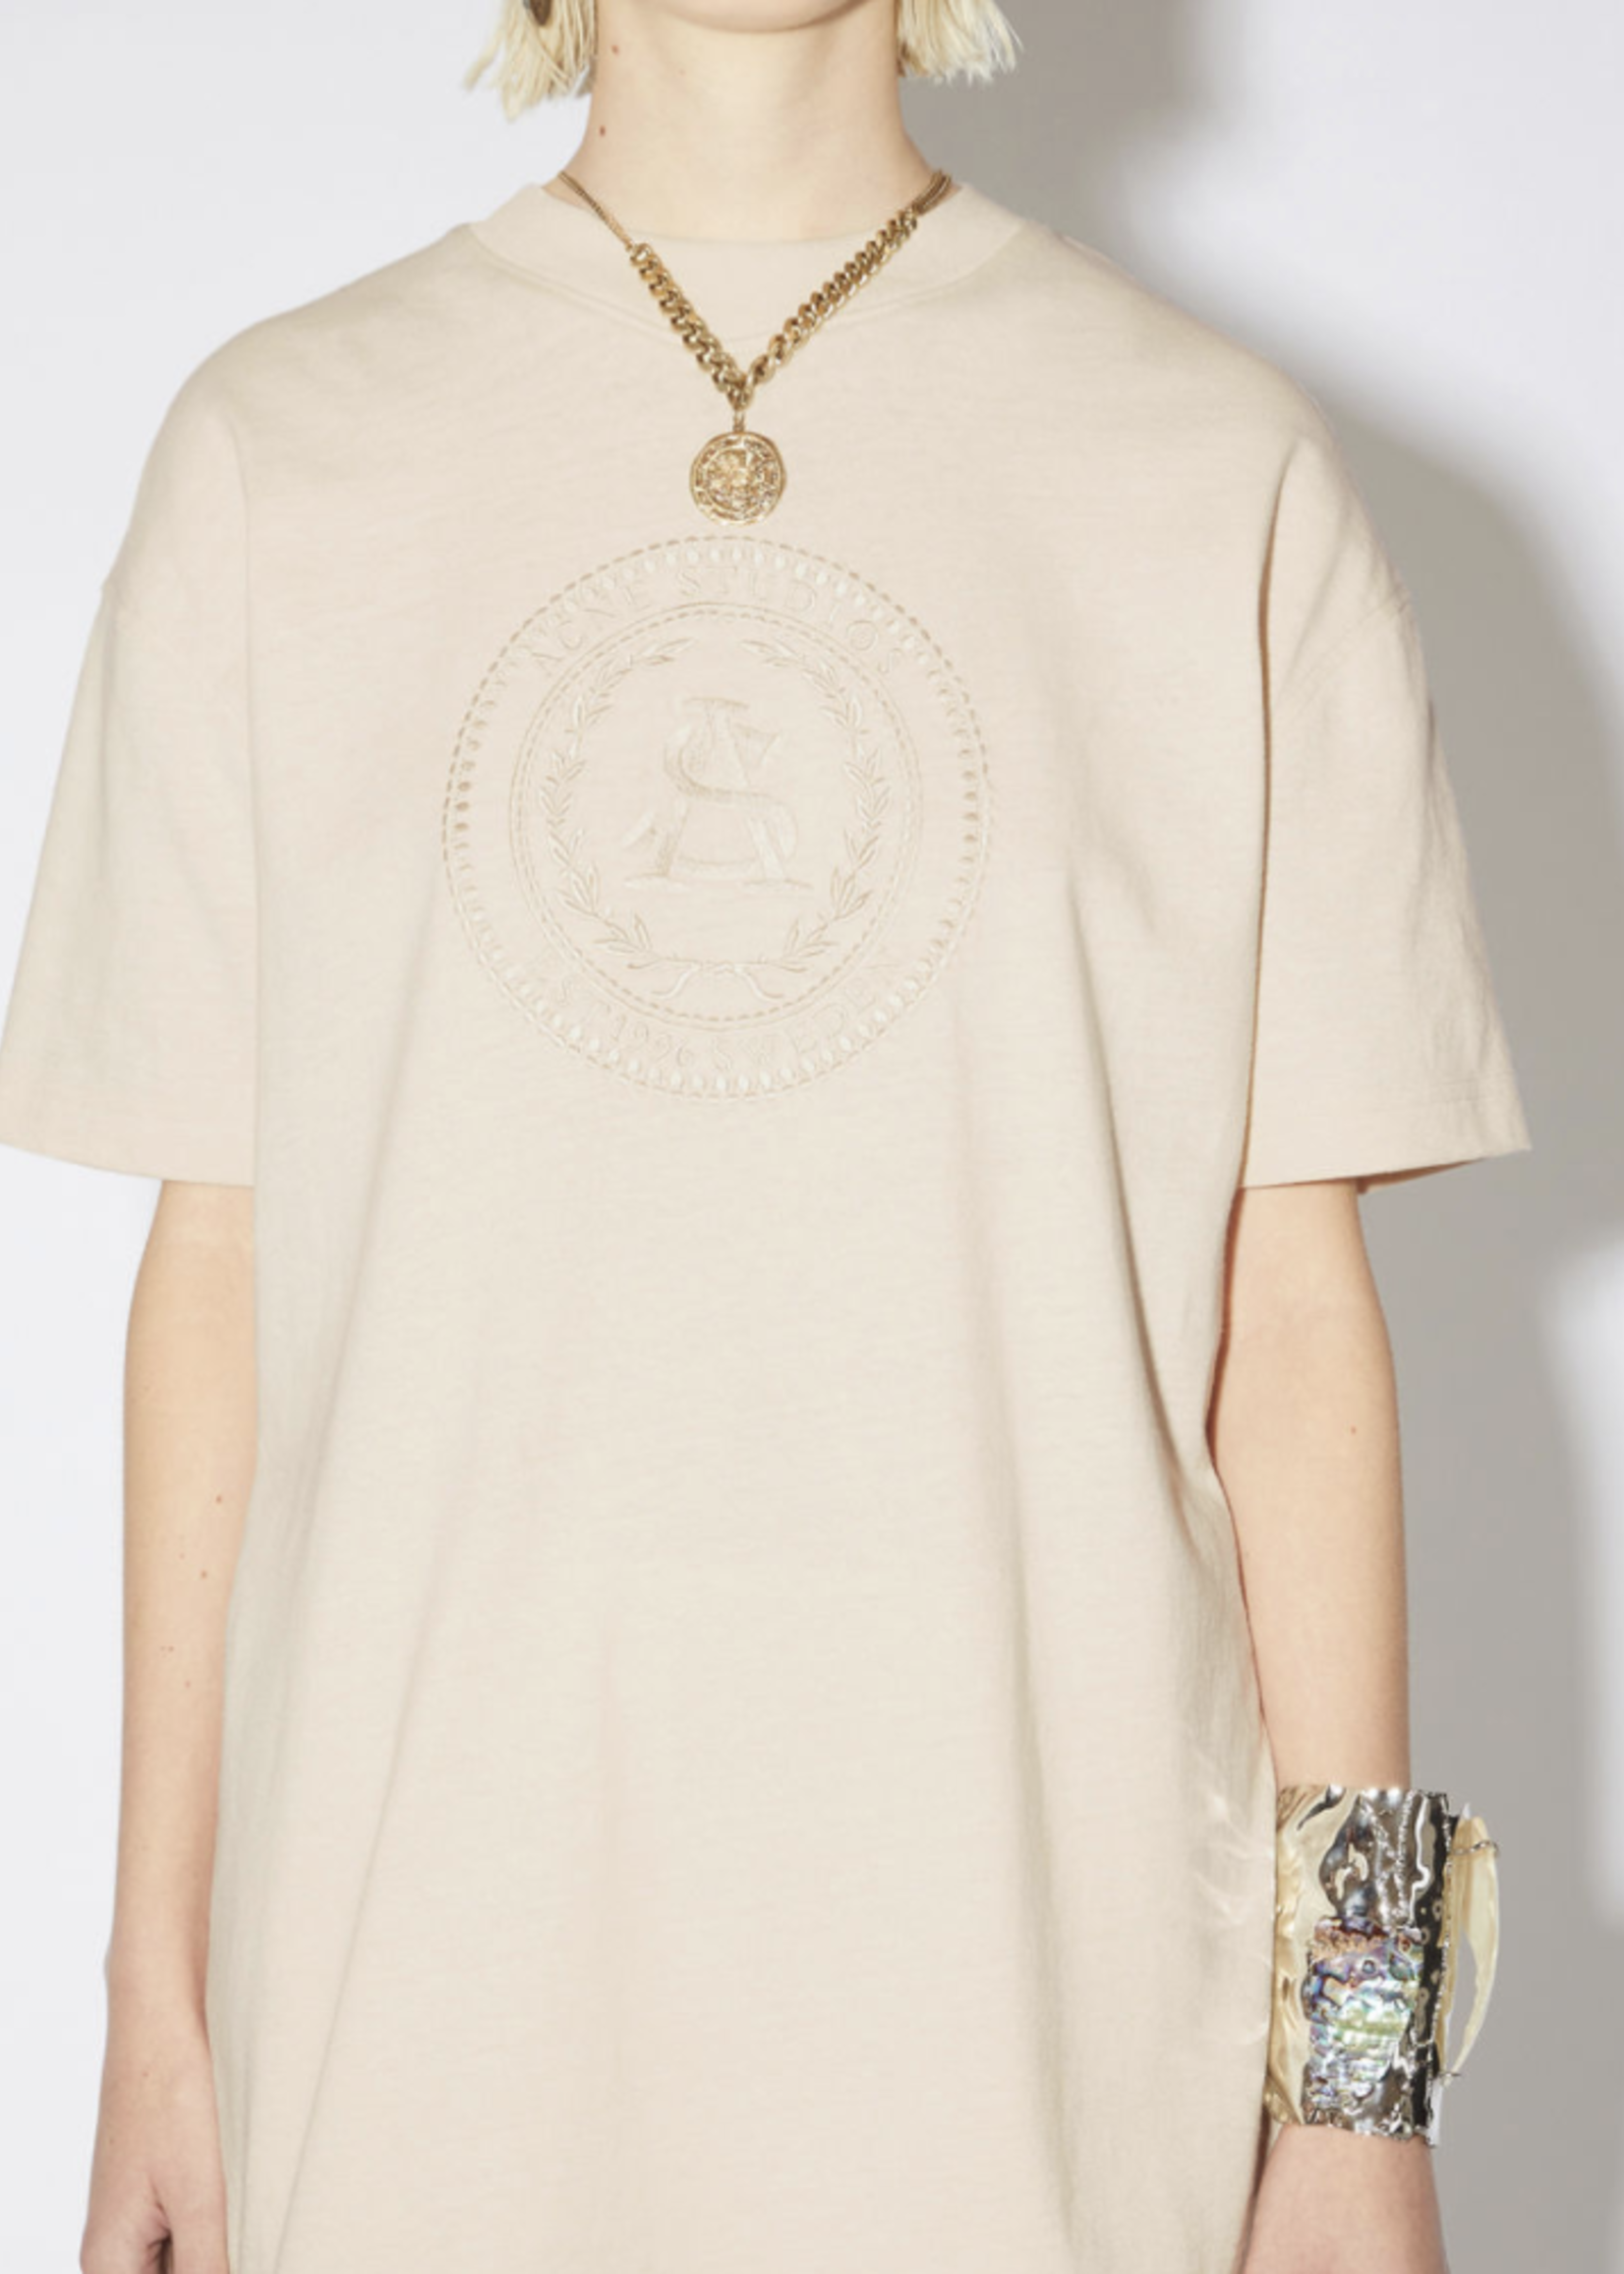 Acne Studios Acnestudios  Elice  embroided coconut white